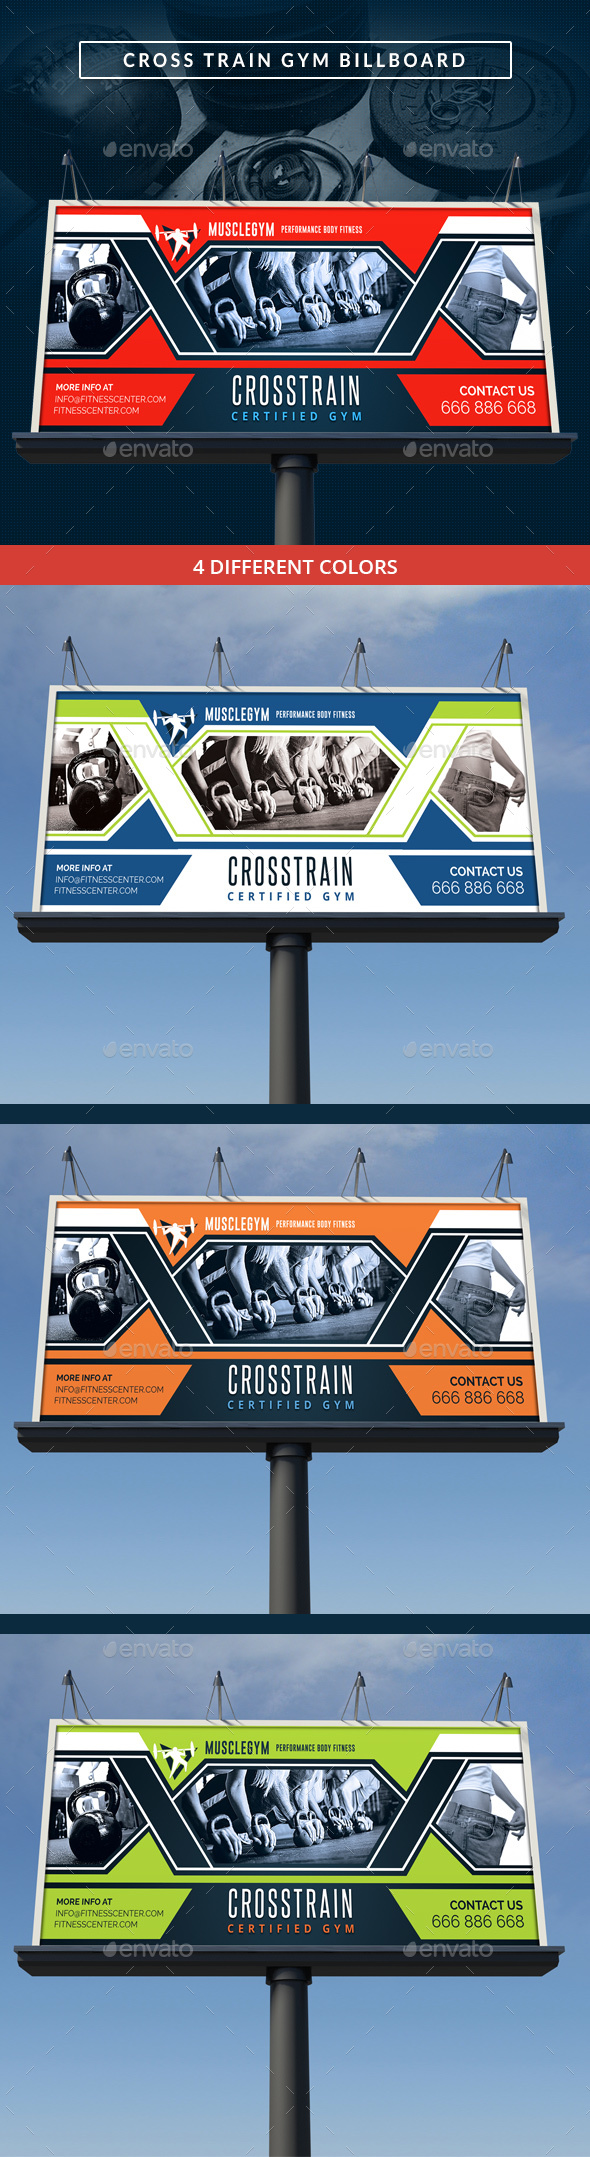 Cross Training Gym Signage Billboard - Signage Print Templates